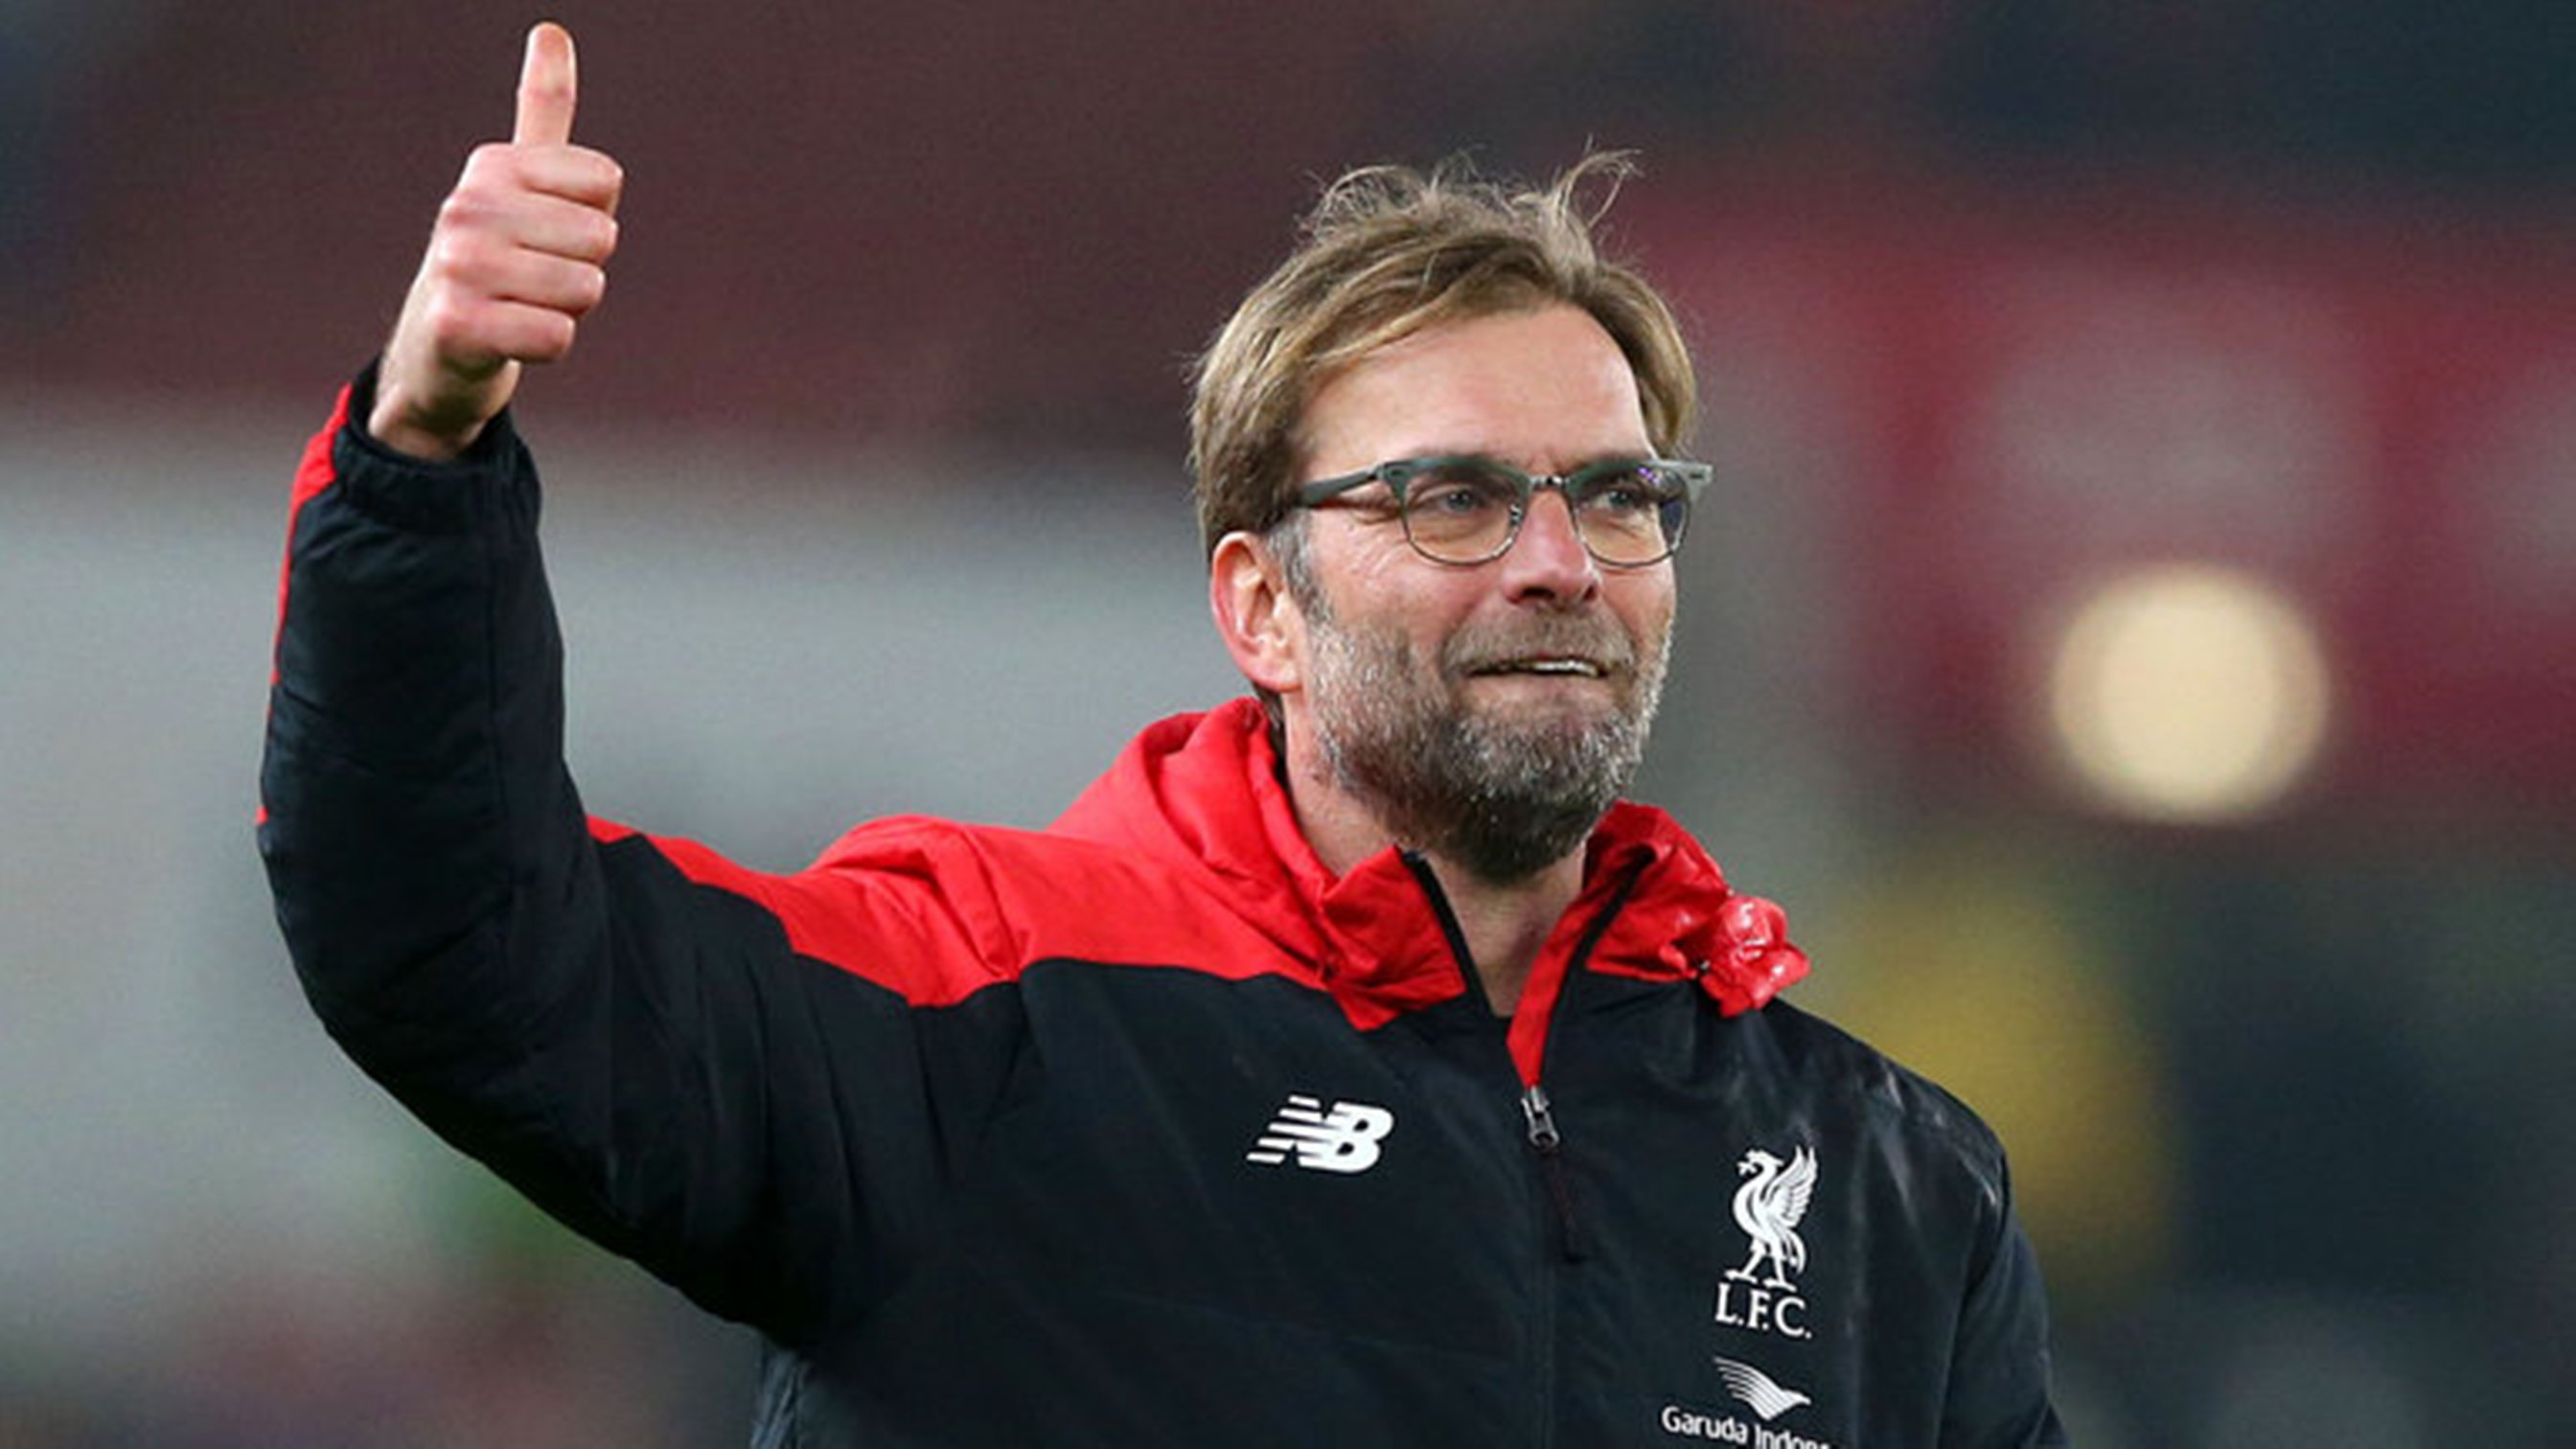 Liverpool coach to play aggressive against United